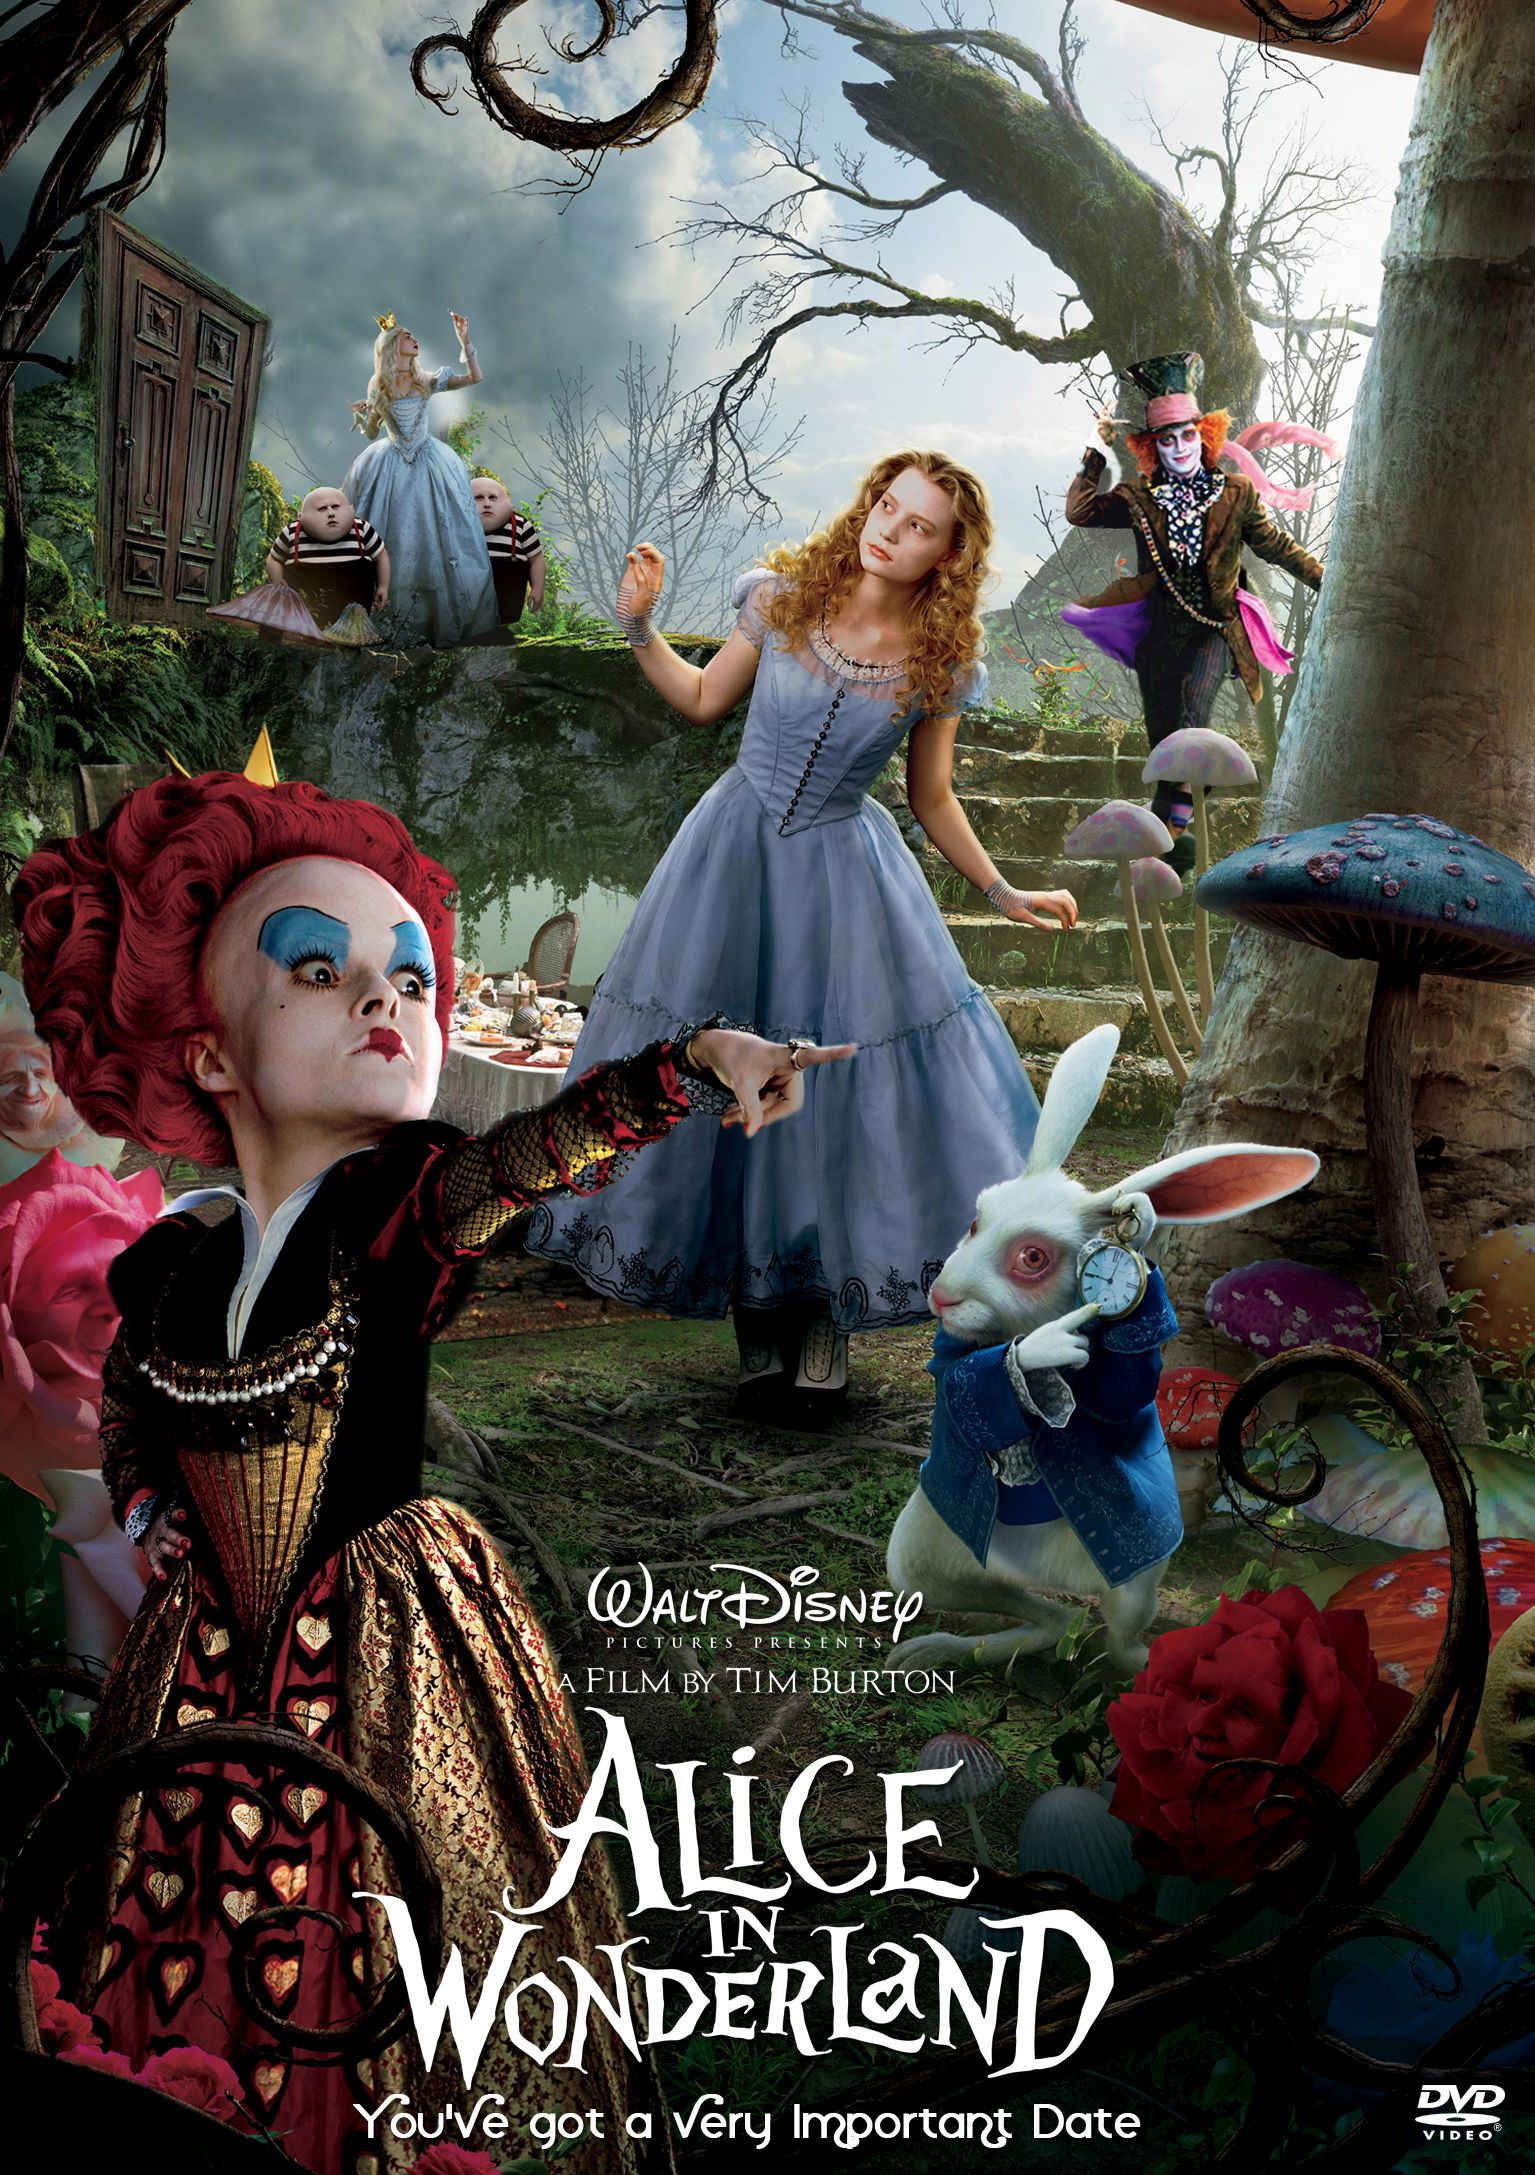 A poster for Alice in Wonderland (2010)